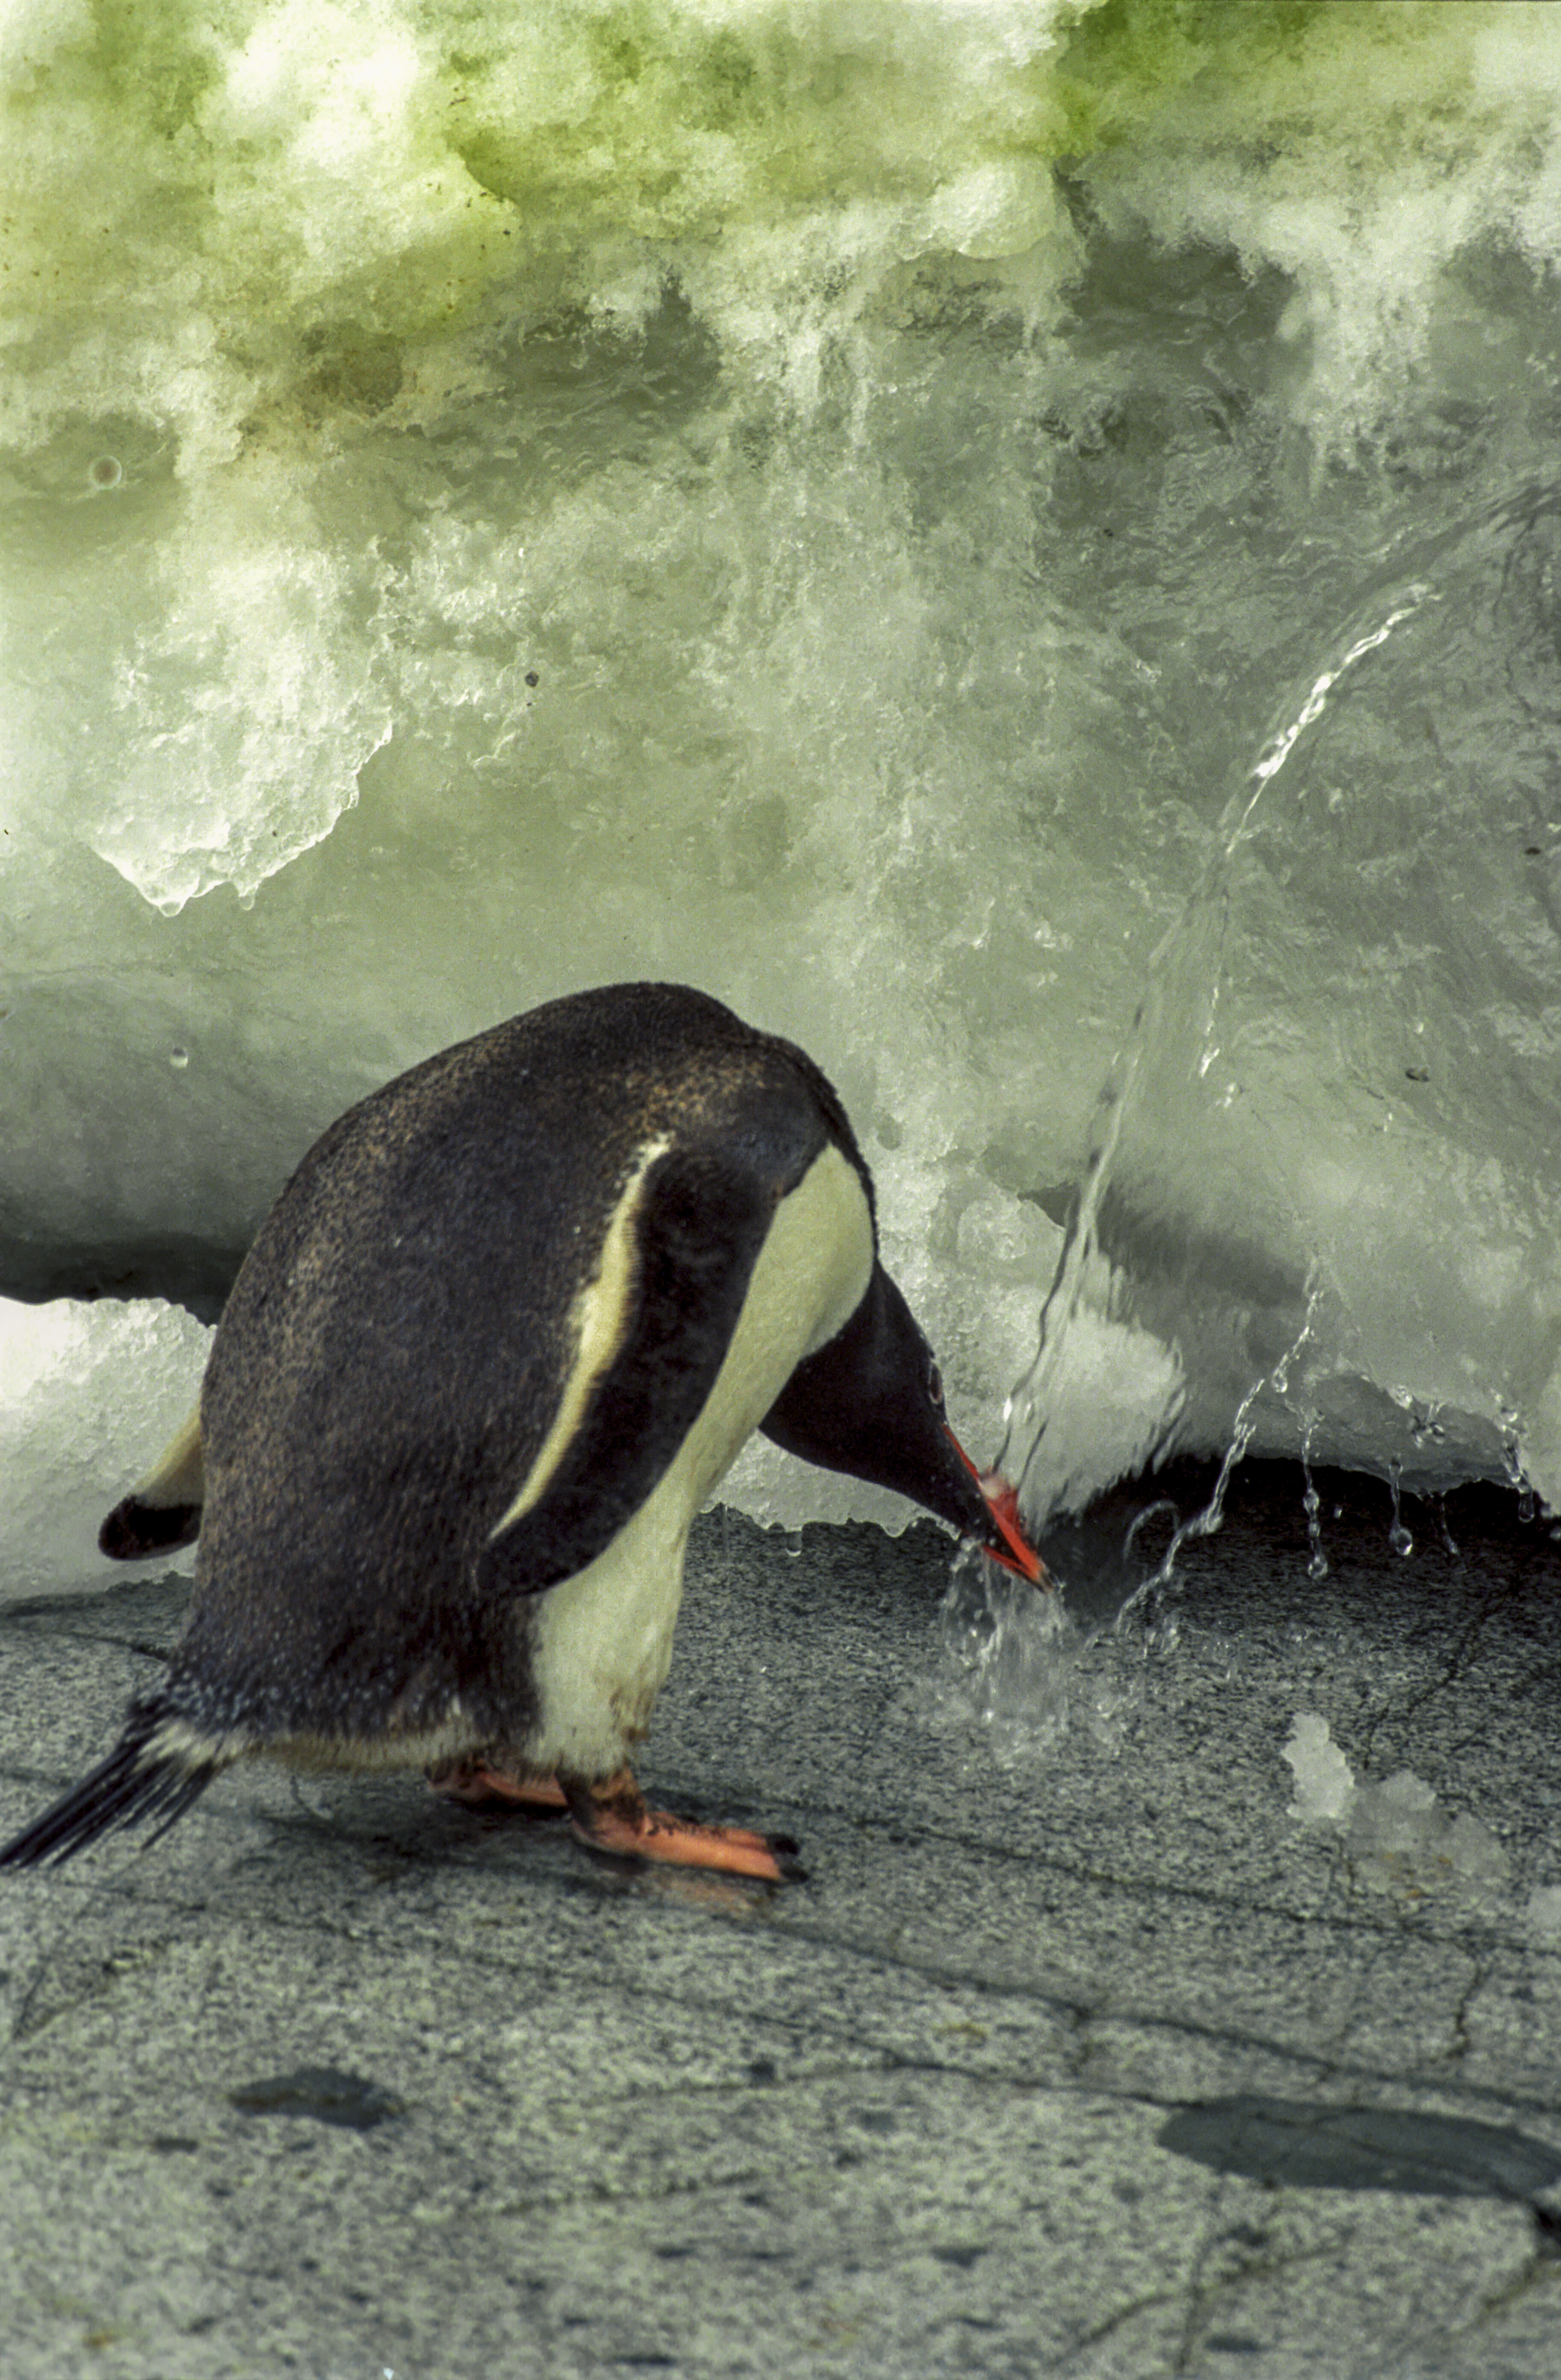 http://upload.wikimedia.org/wikipedia/commons/d/df/Antarctic,_gentoo_penguin_(js)_59.jpg